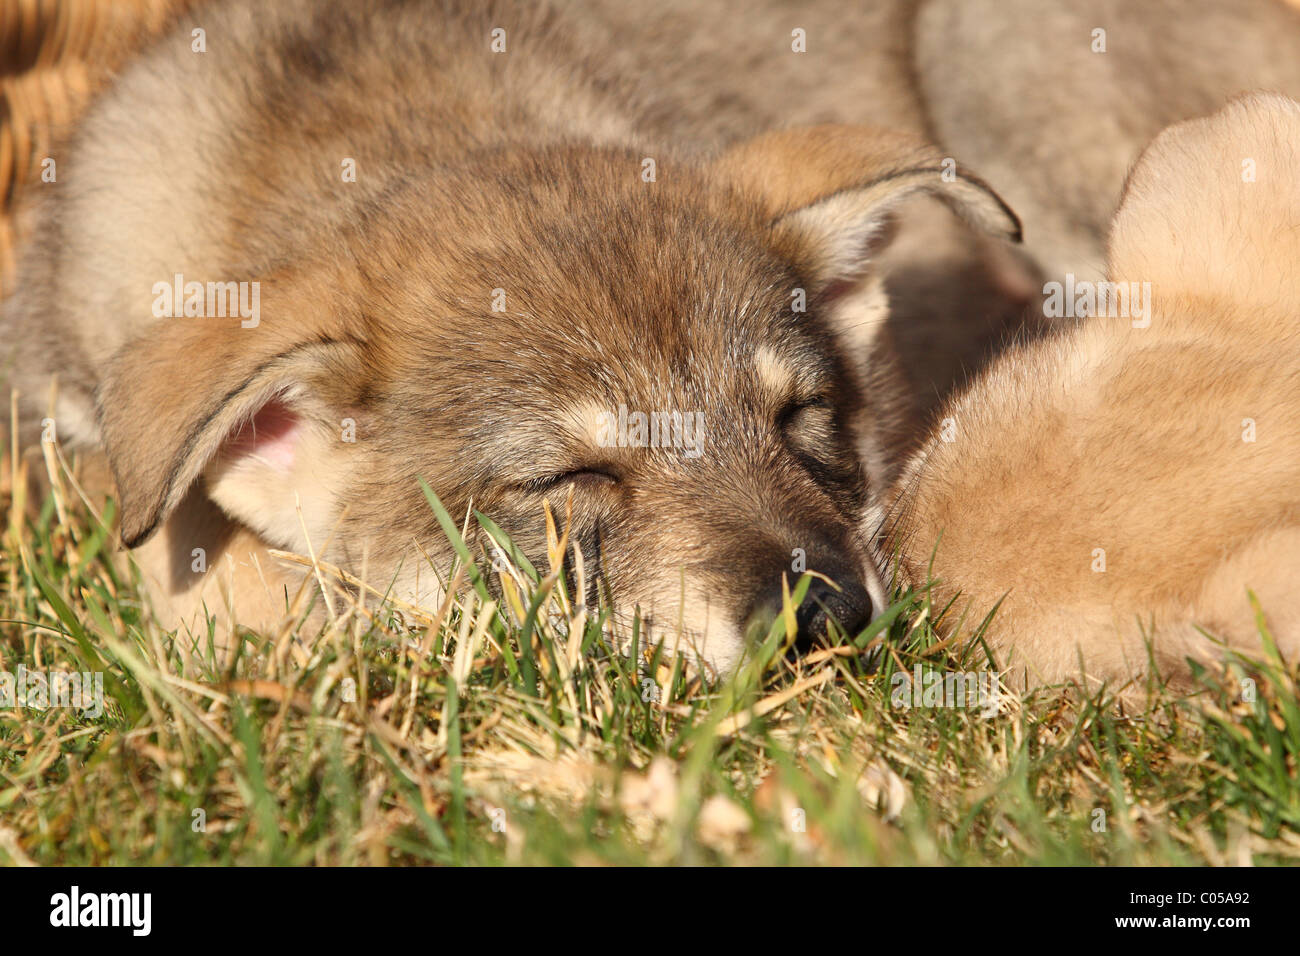 Saarloos Wolfdog Puppy Stock Photo